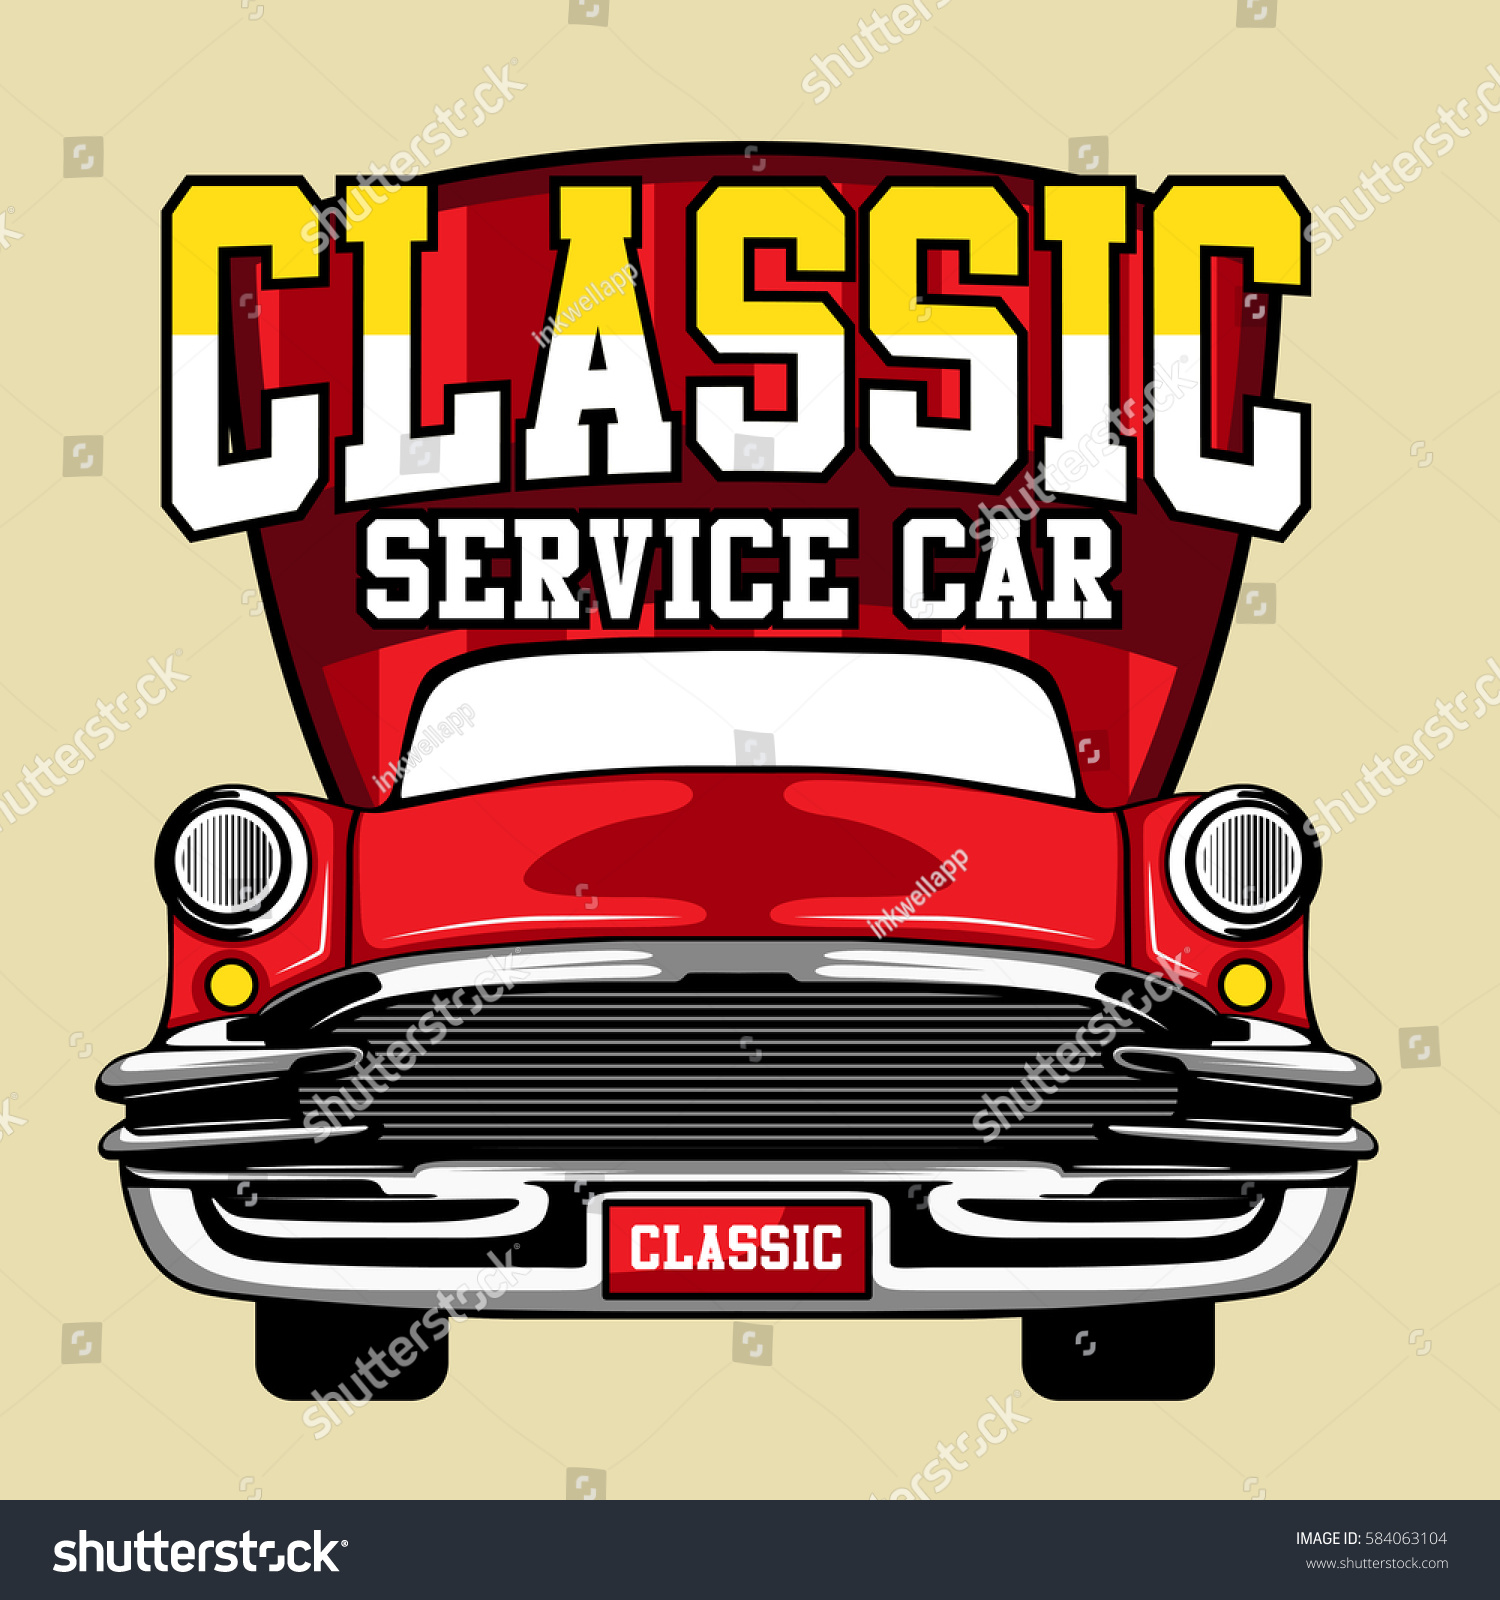 Classic Car Service Stock Photo (Photo, Vector, Illustration ...